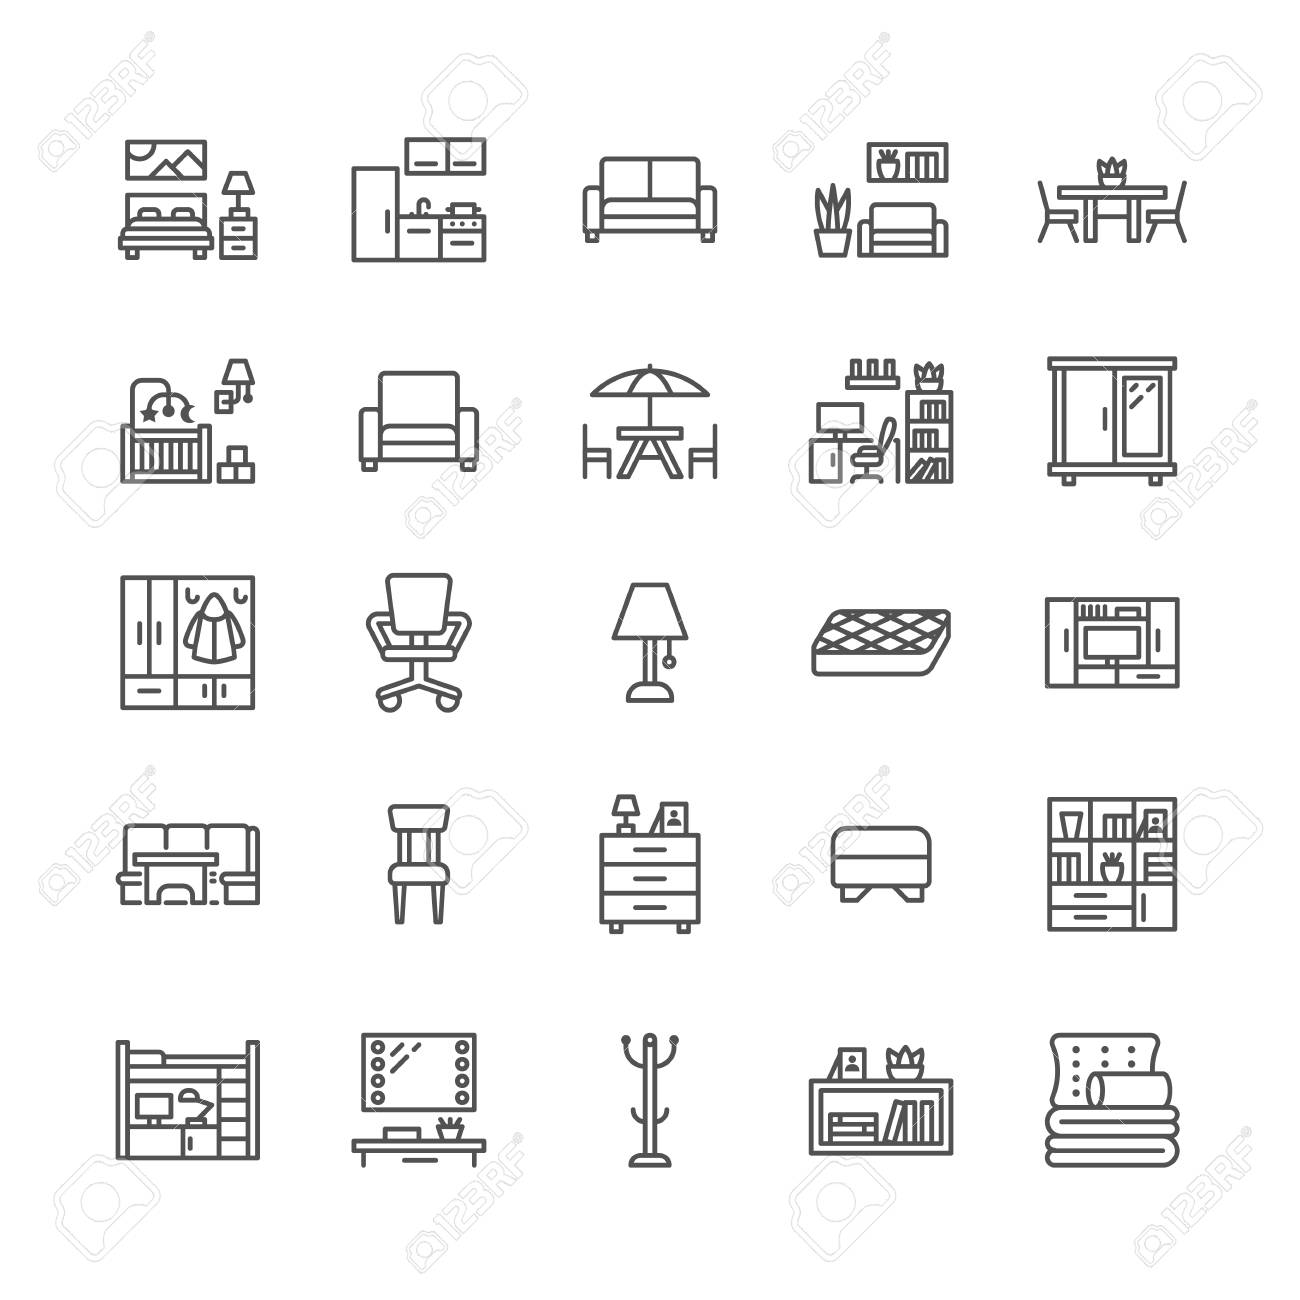 Furniture vector flat line icons. Living room tv stand, bedroom, home office, kitchen corner bench, sofa, nursery, dining table, bedding. Thin signs collection for interior store. Pixel perfect 64x64. - 103024076